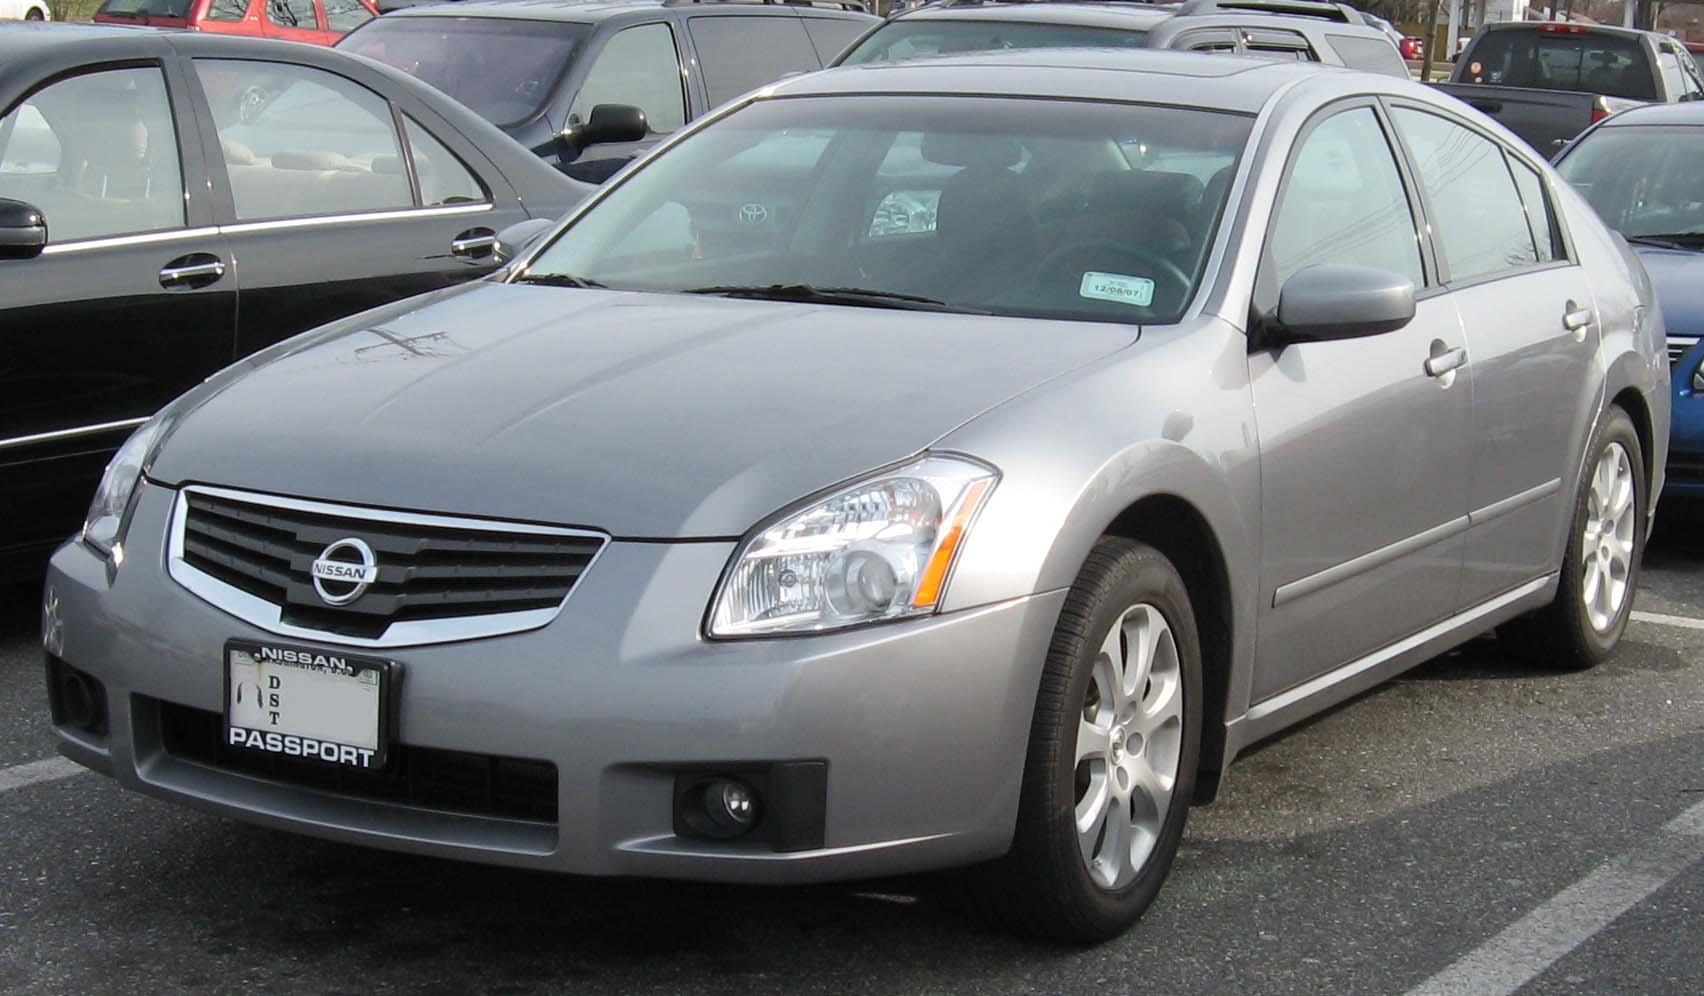 2006 Nissan Quest Reviews >> Nissan Maxima 2007: Review, Amazing Pictures and Images – Look at the car